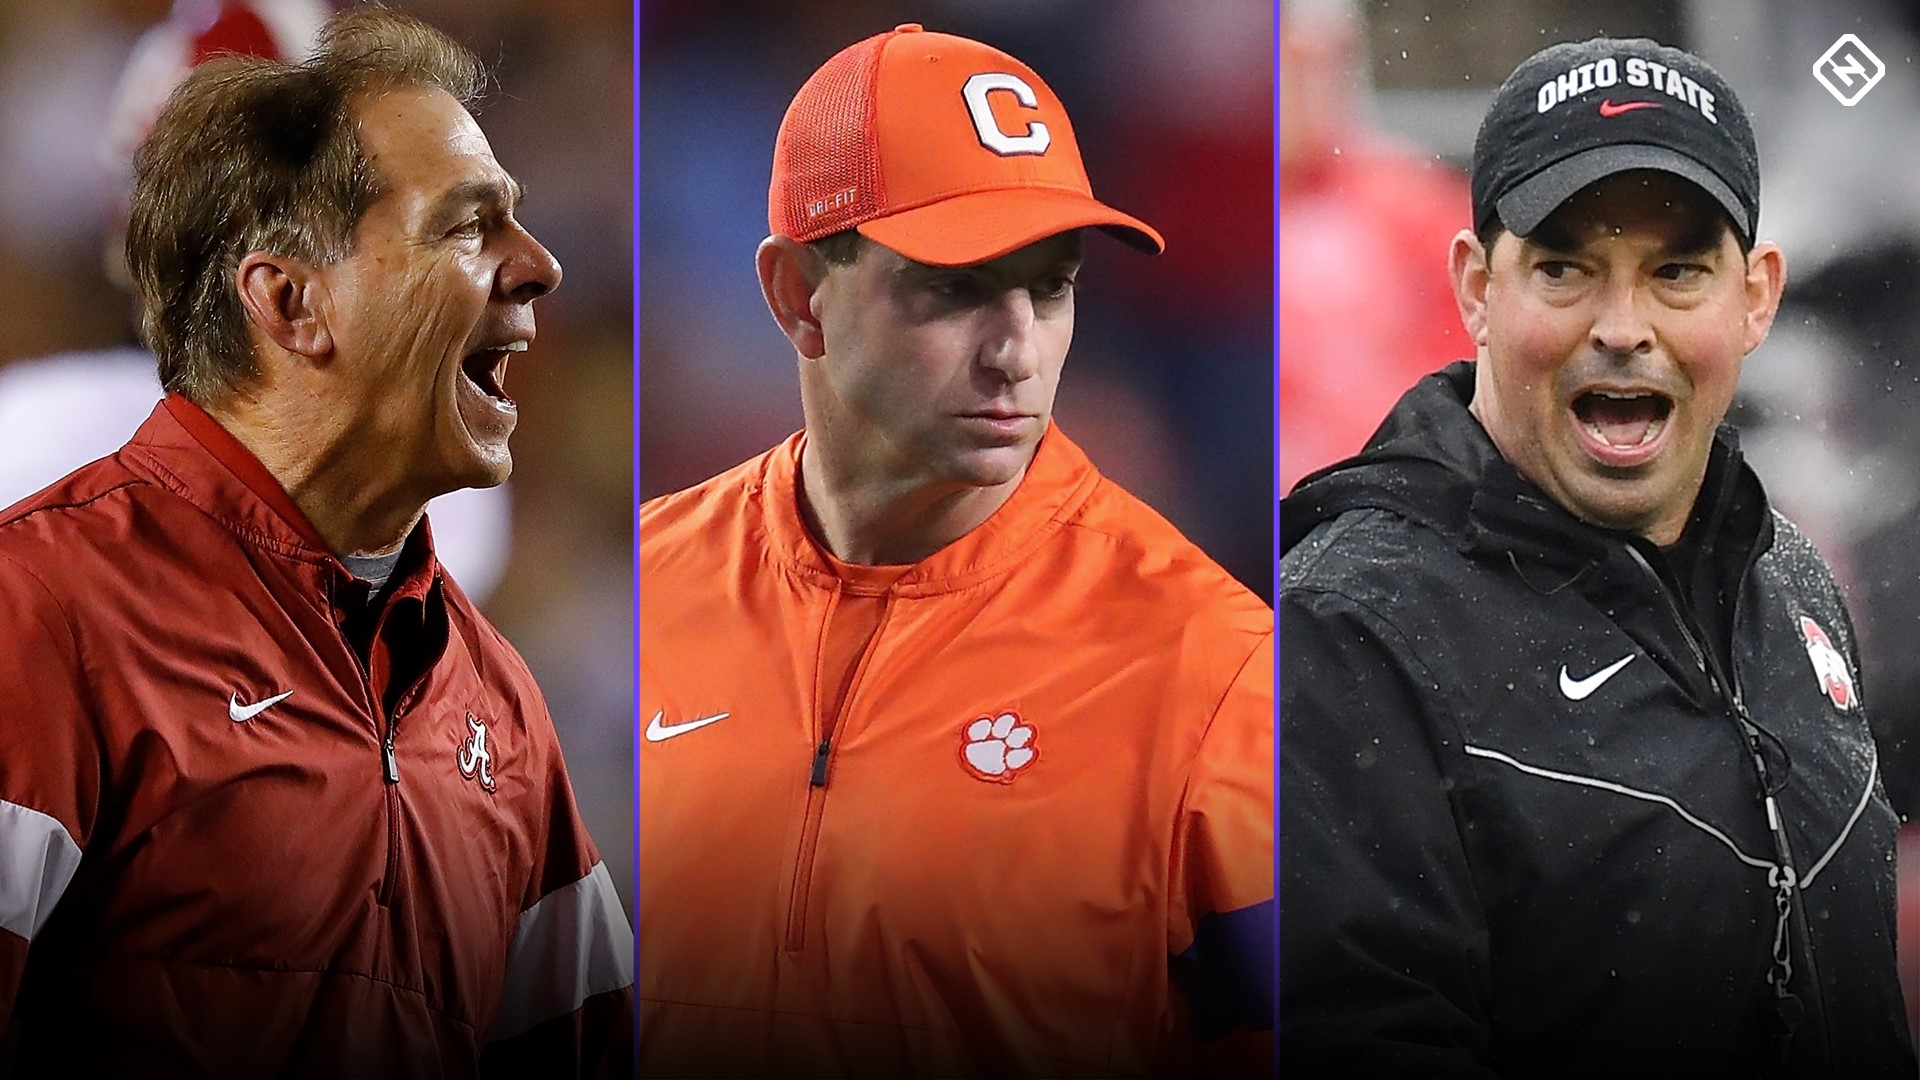 Nick-saban-dabo-swinney-ryan-day-010920_mkfinhtxz9nb18sr1nqi8f183